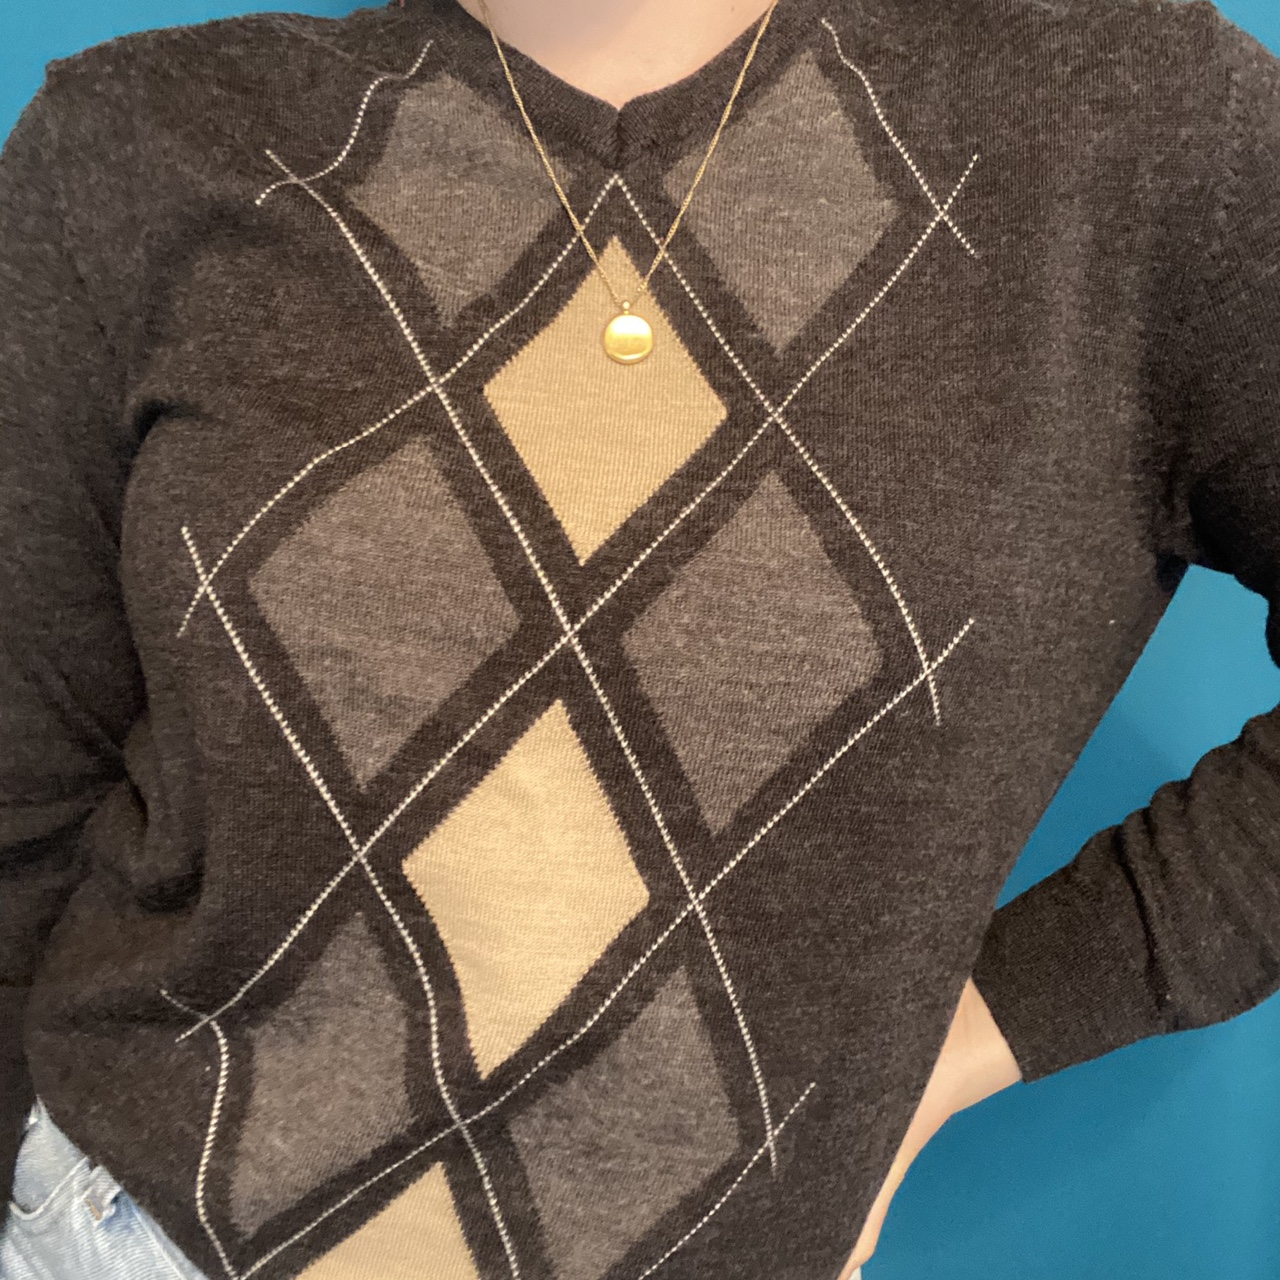 Product Image 1 - Tan and grey argyle sweater.